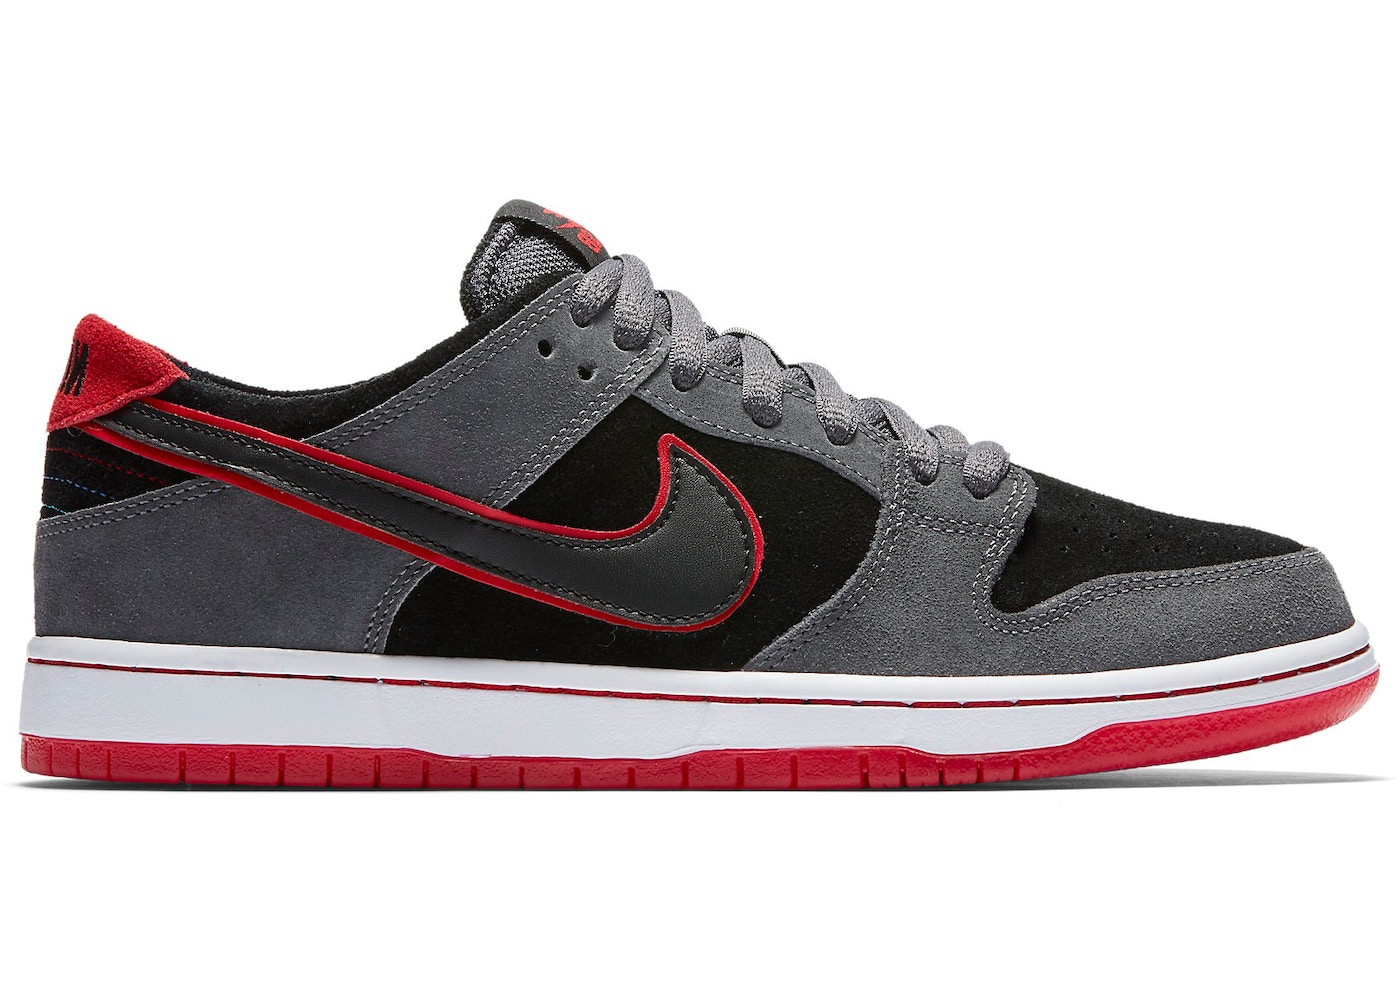 1fc2ae19 Sell. or Ask. Size: 9.5. View All Bids. Nike SB Dunk Low Ishod Wair Dark  Grey